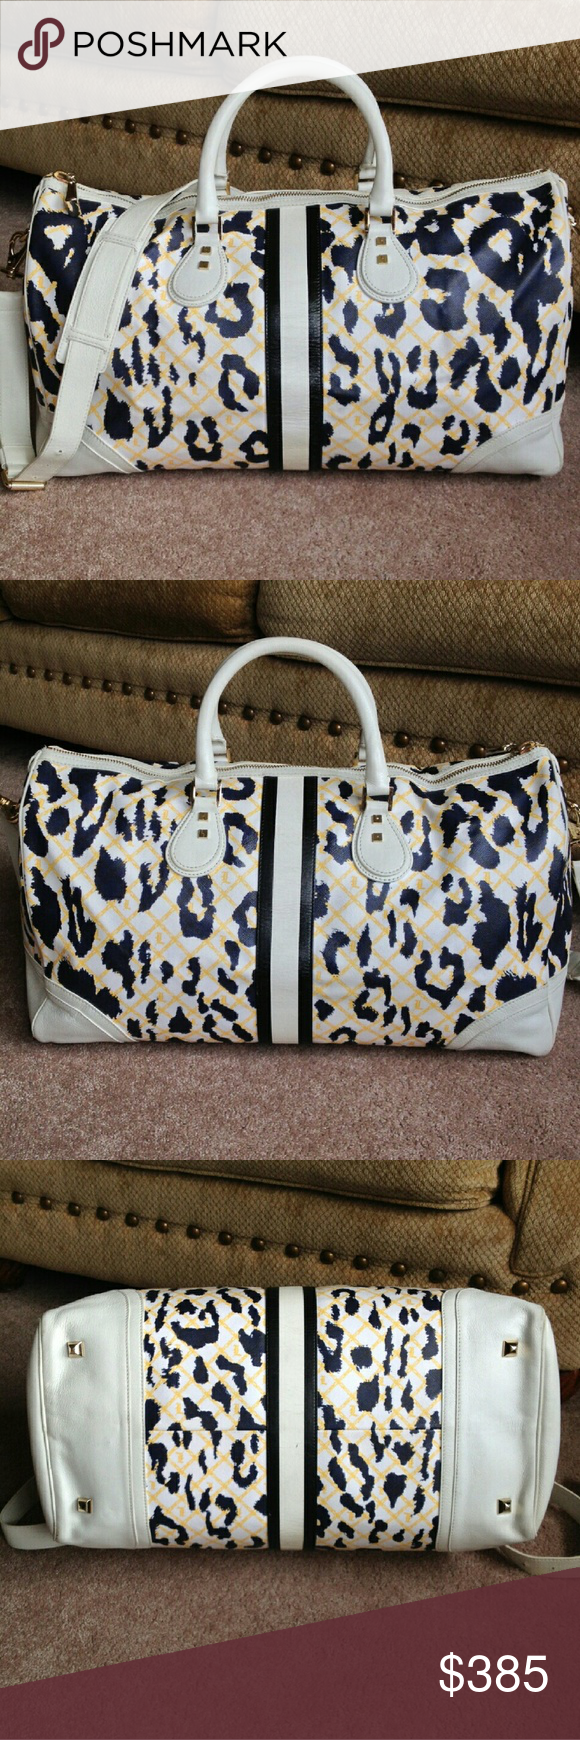 L.A.M.B. Rare Eton Duffle bag L.A.M.B. Rare Eton Duffle bag in white leopard! HTF and perfect for travel or overnight trips. LOVE, but use my other one more and this just sits!! A must have for any L.A.M.B. collector!! Great overall condition with slight wear to middle leather strip and corners, hardware and inside are immaculant! Additional listing for more pics of condition is posted! Any questions welcome and of course cheaper through double P  just ask! L.A.M.B. Bags Travel Bags